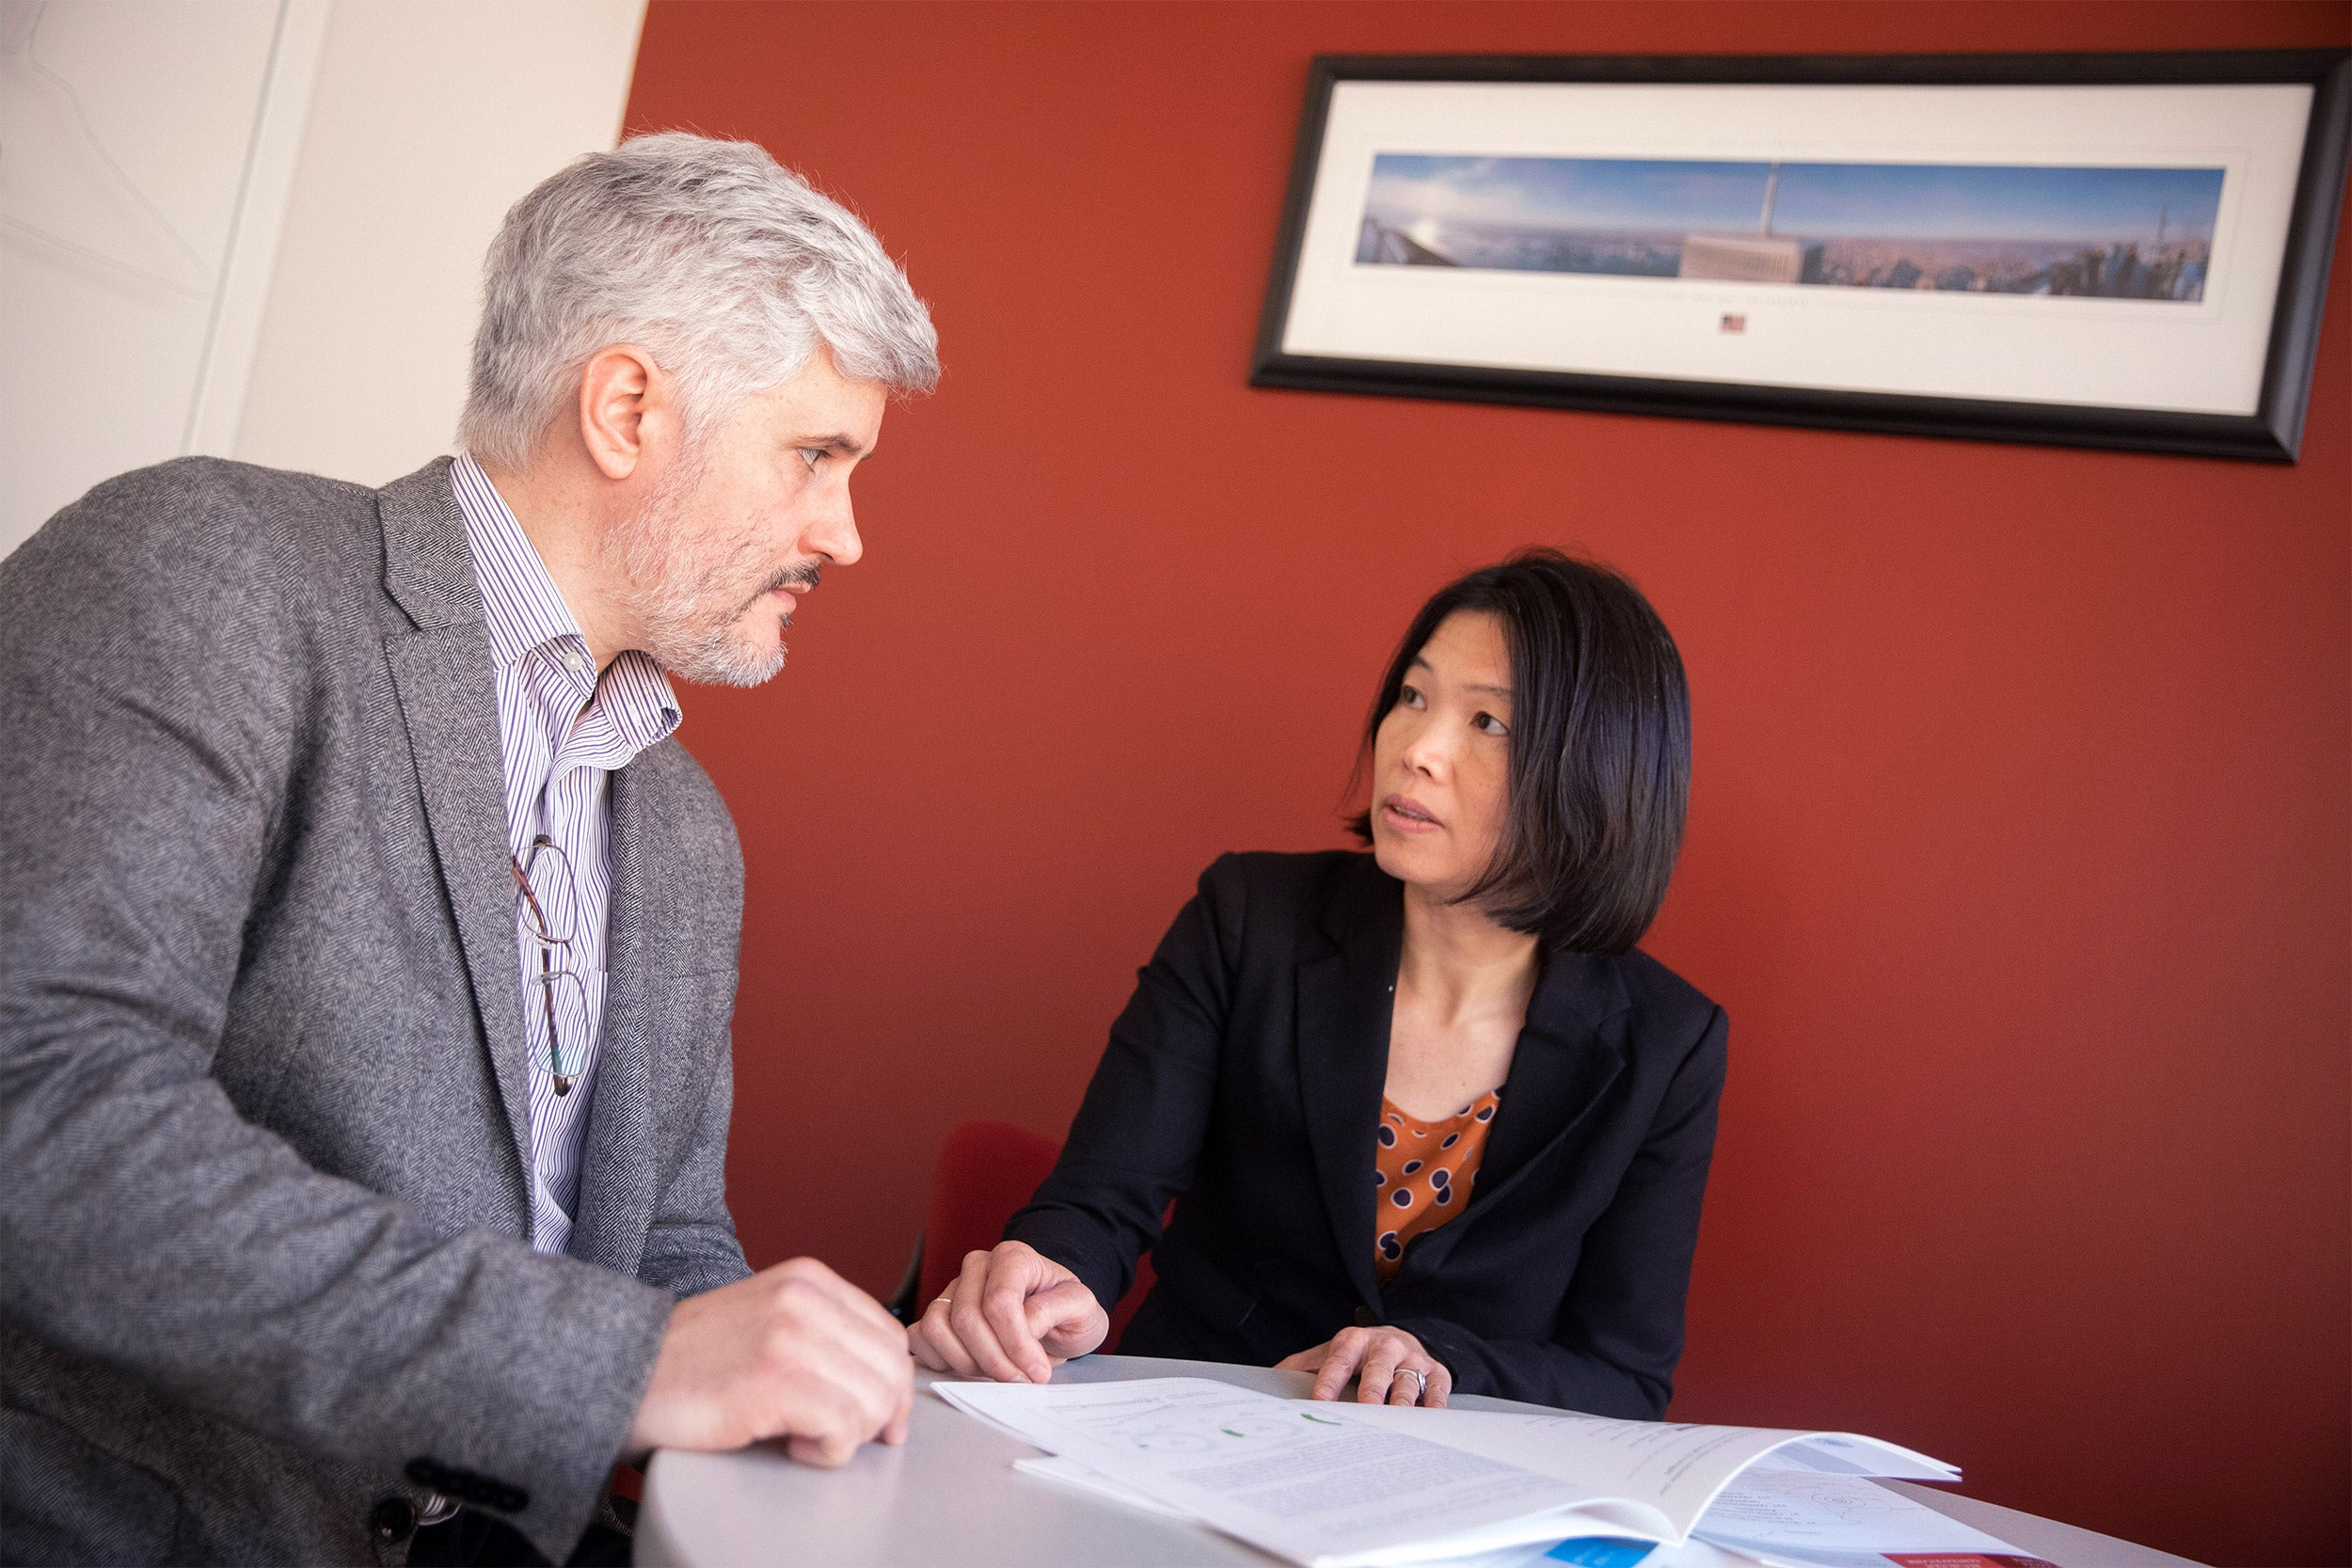 Harvard researchers Patrick Vinck and Phuong Pham are working on reconciling the conflict between trust in institutions and treating Ebola.